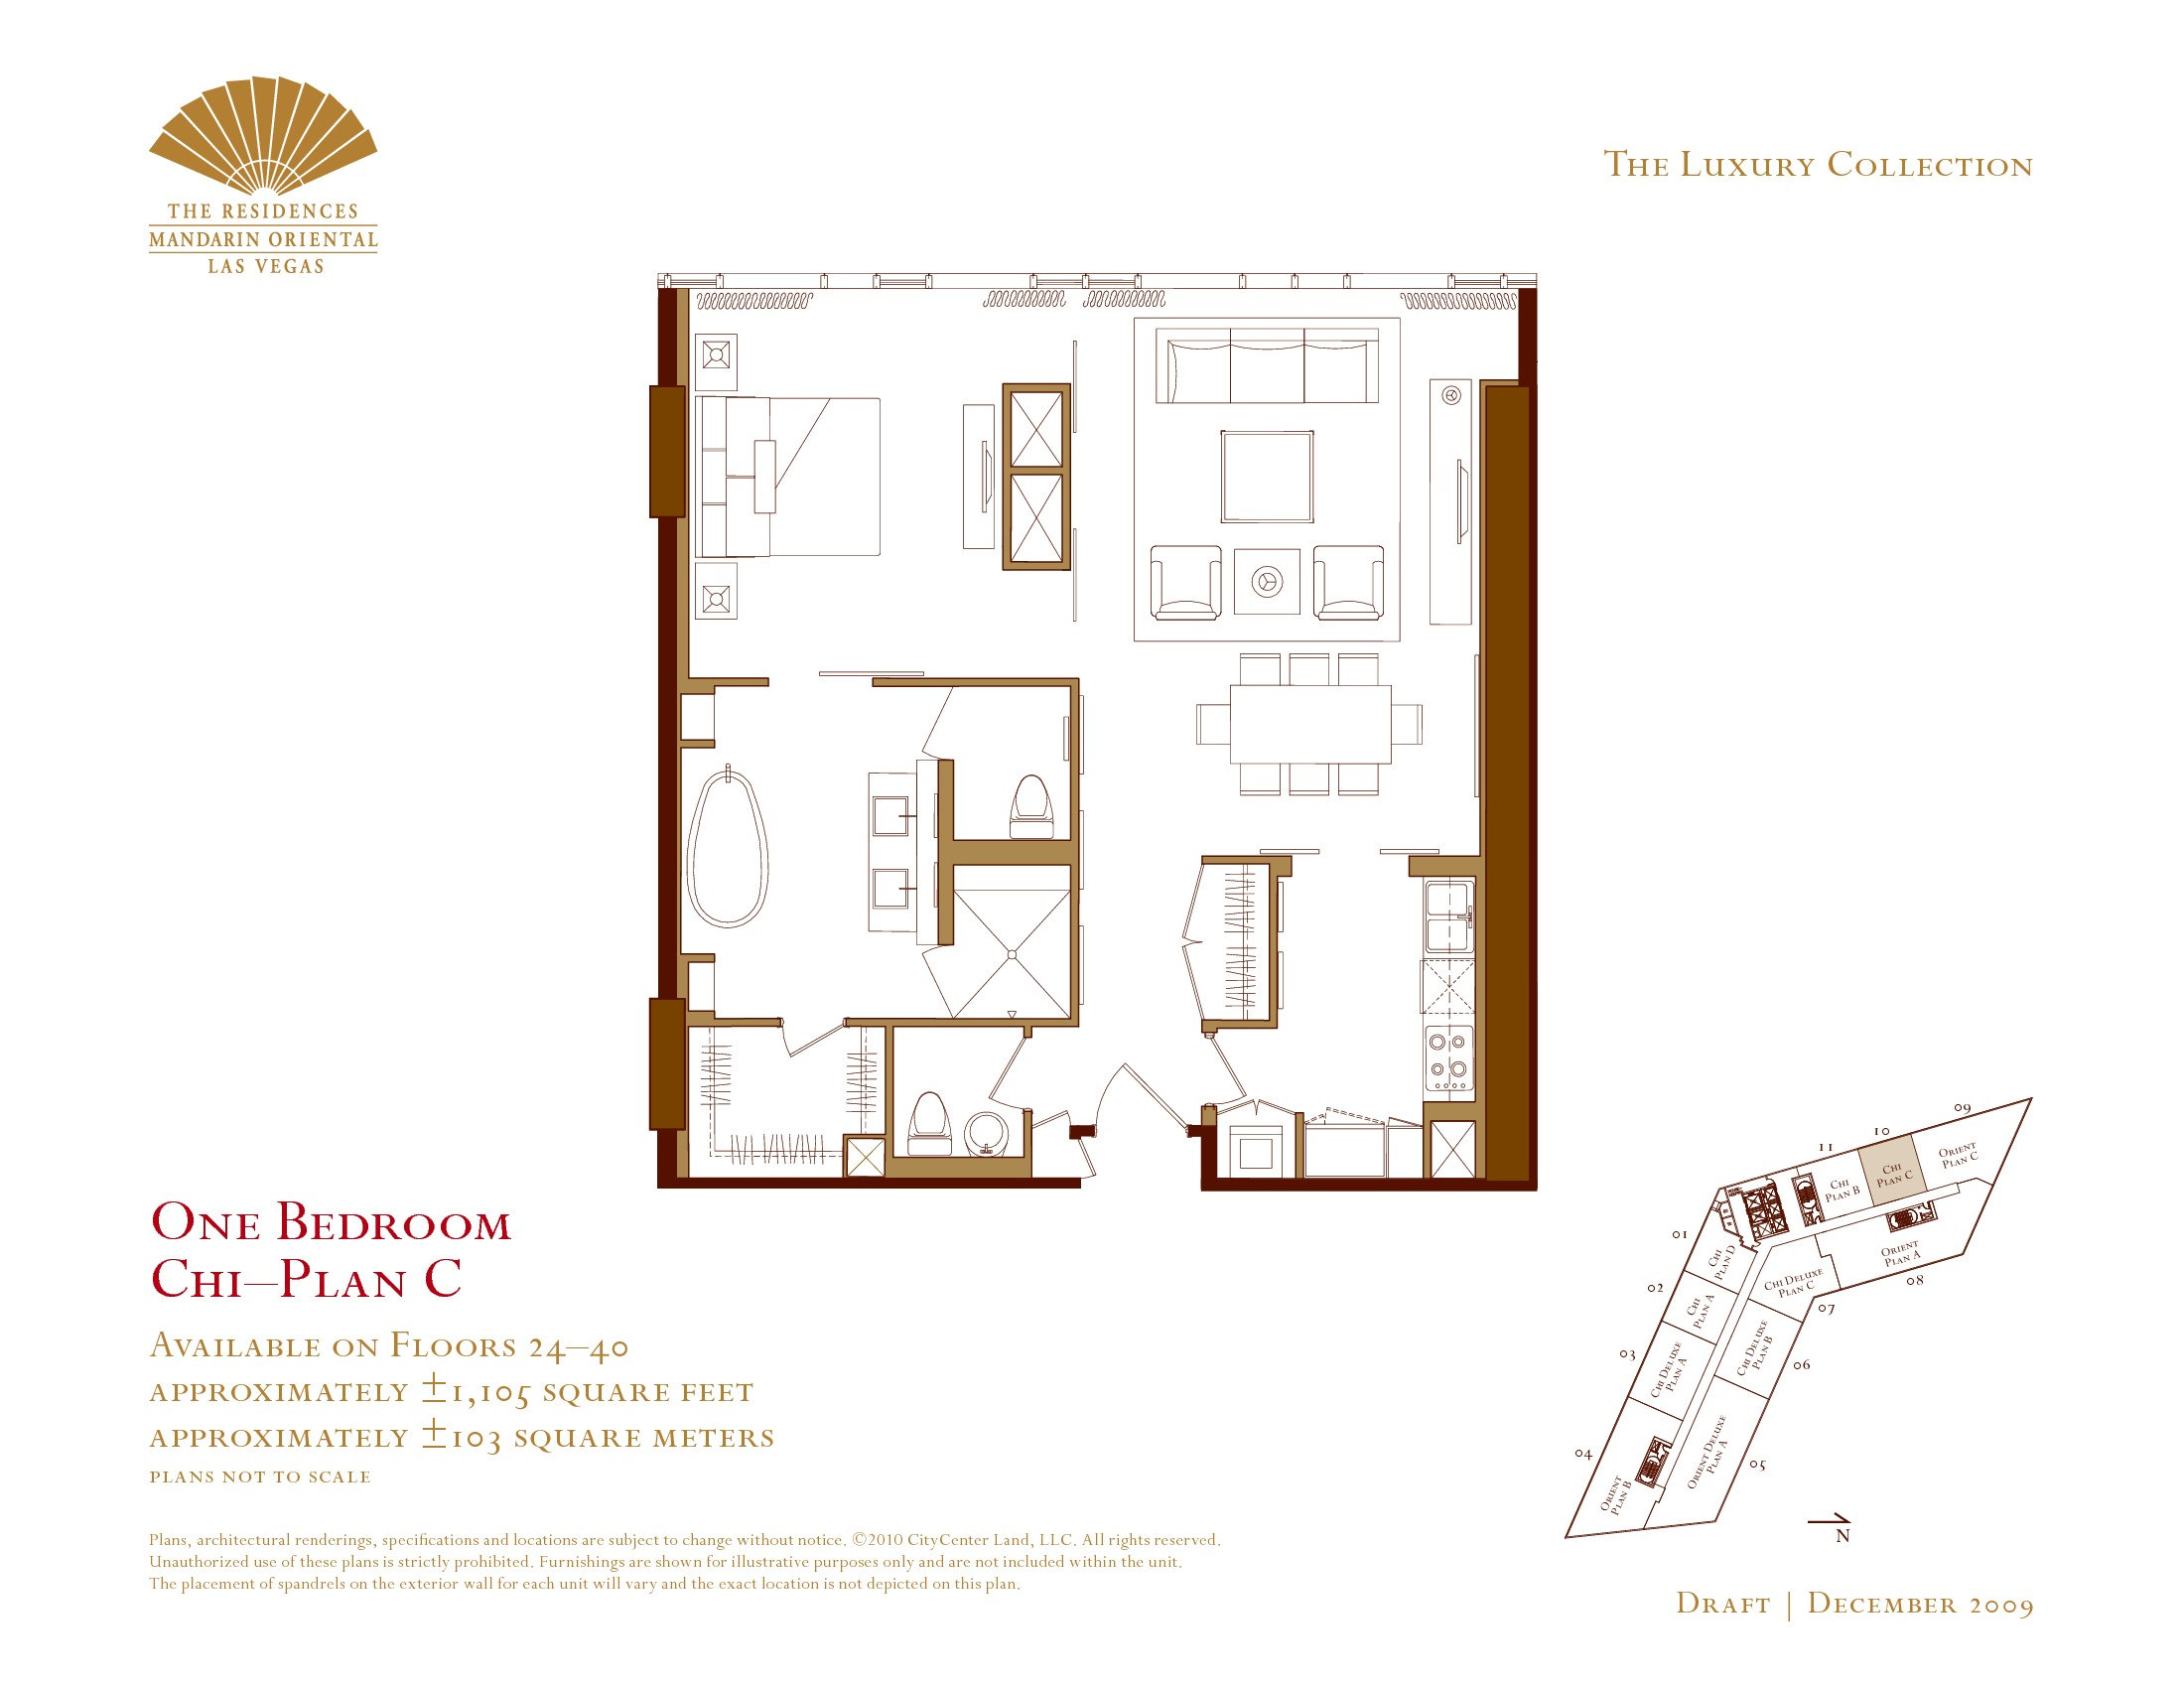 Mandarin residence floor plans city centre las vegas Program for floor plans